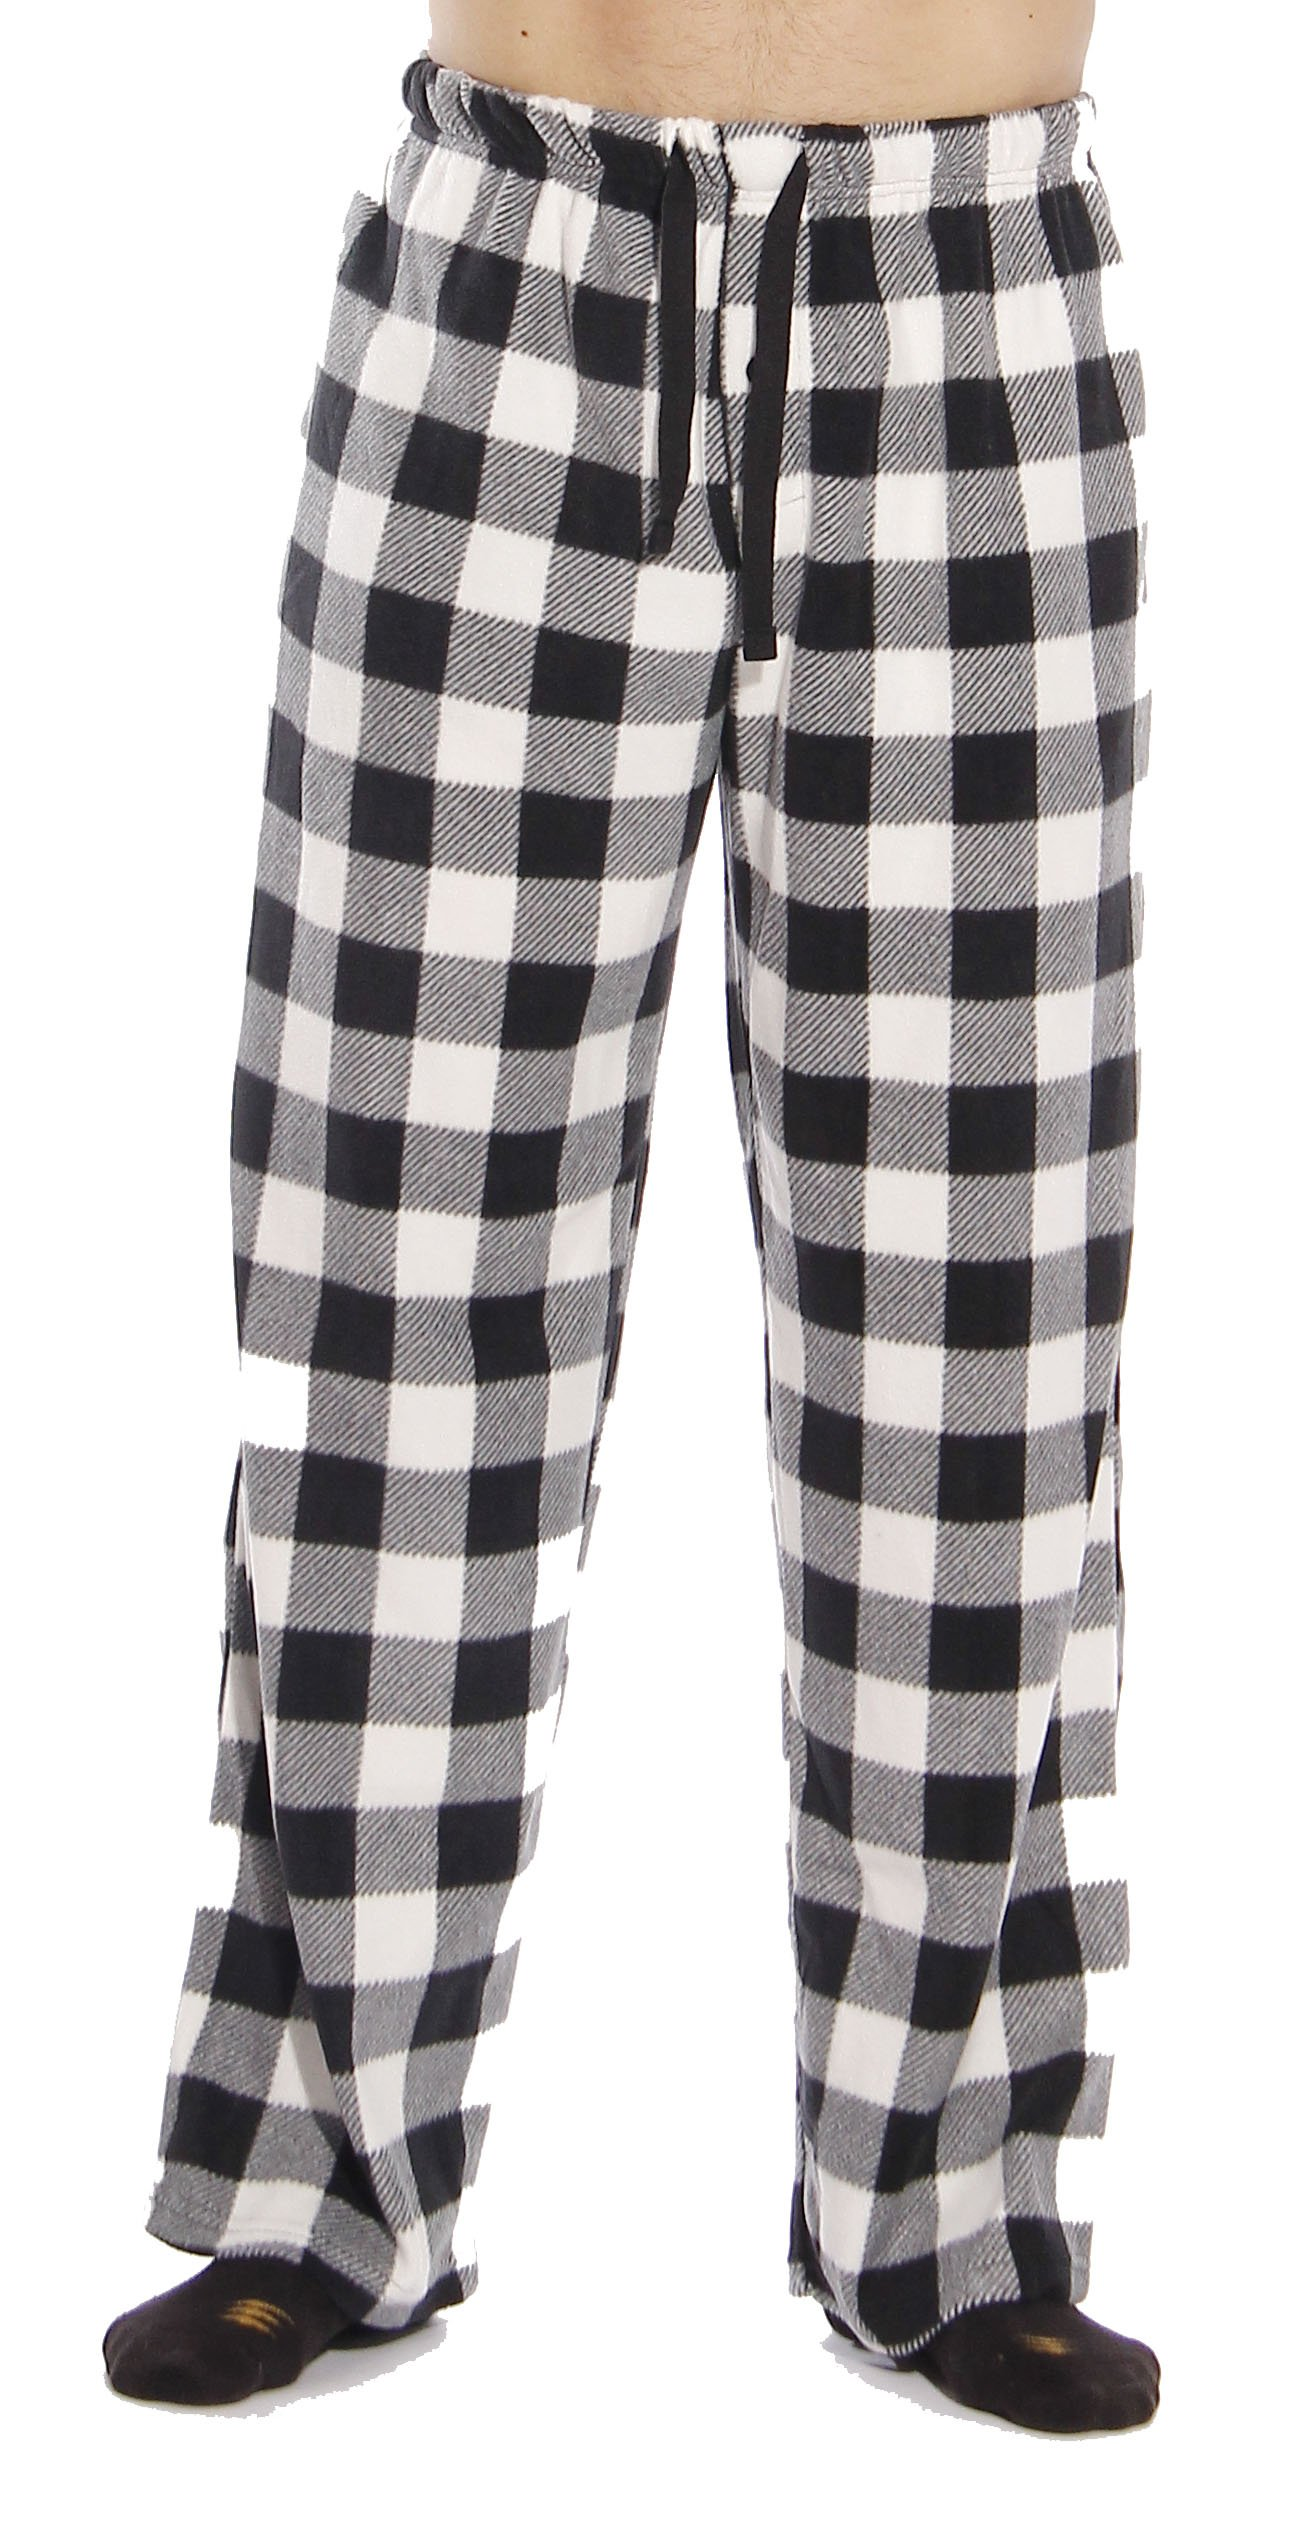 #followme Large Red and Black flannel pajamas